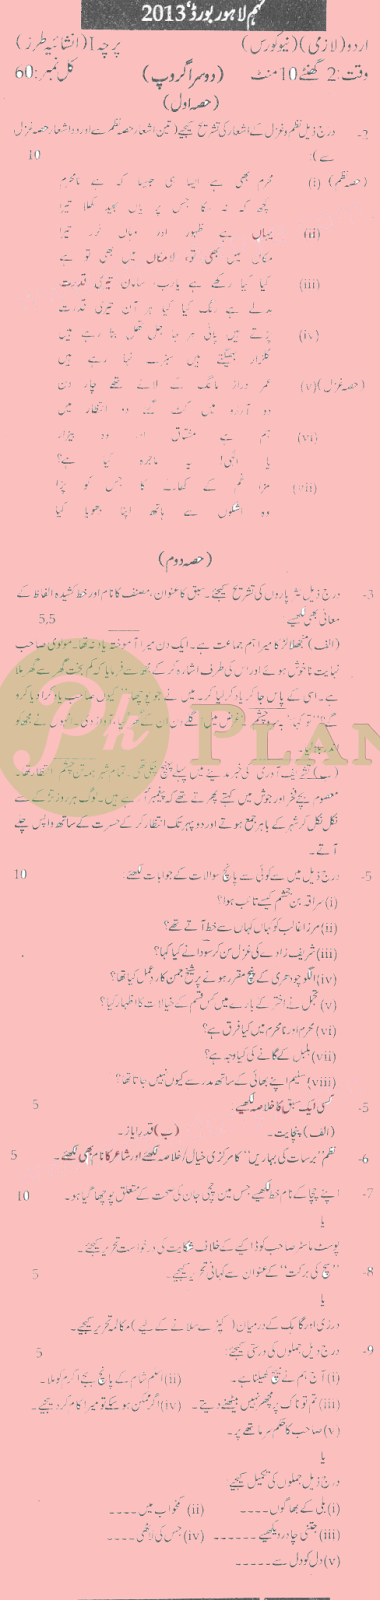 Past Papers of 9th Class Lahore Board 2013 Urdu